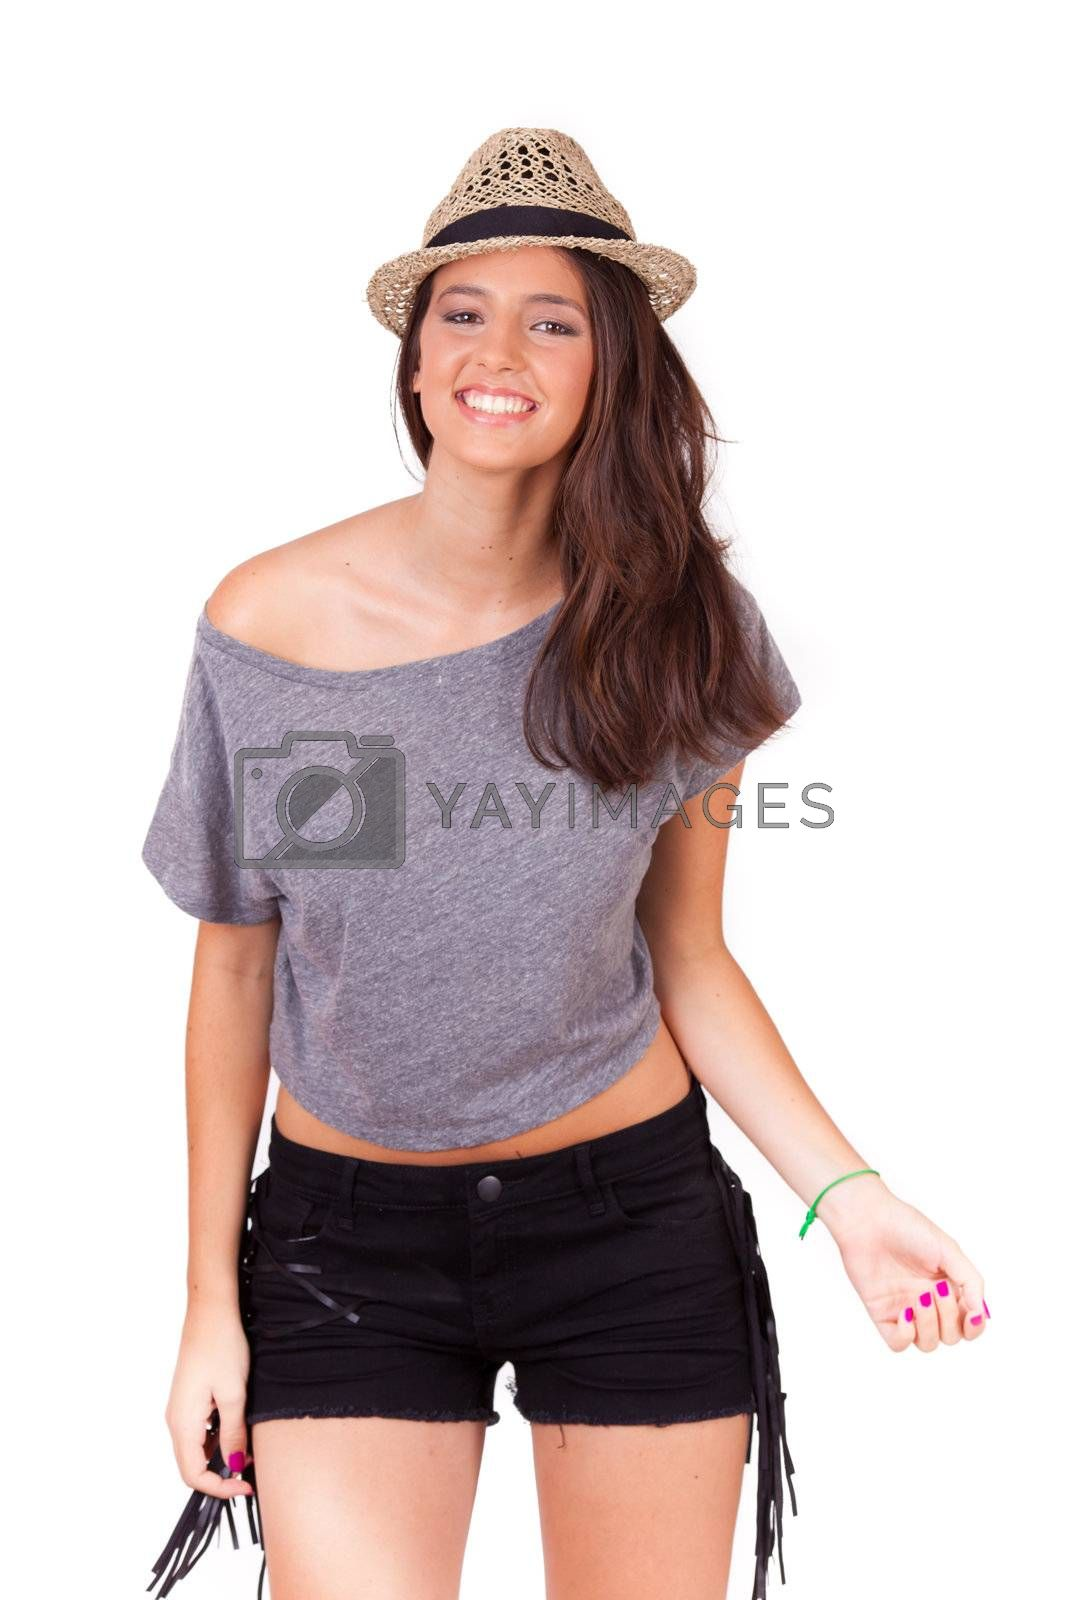 young women smiling with a hat on white background